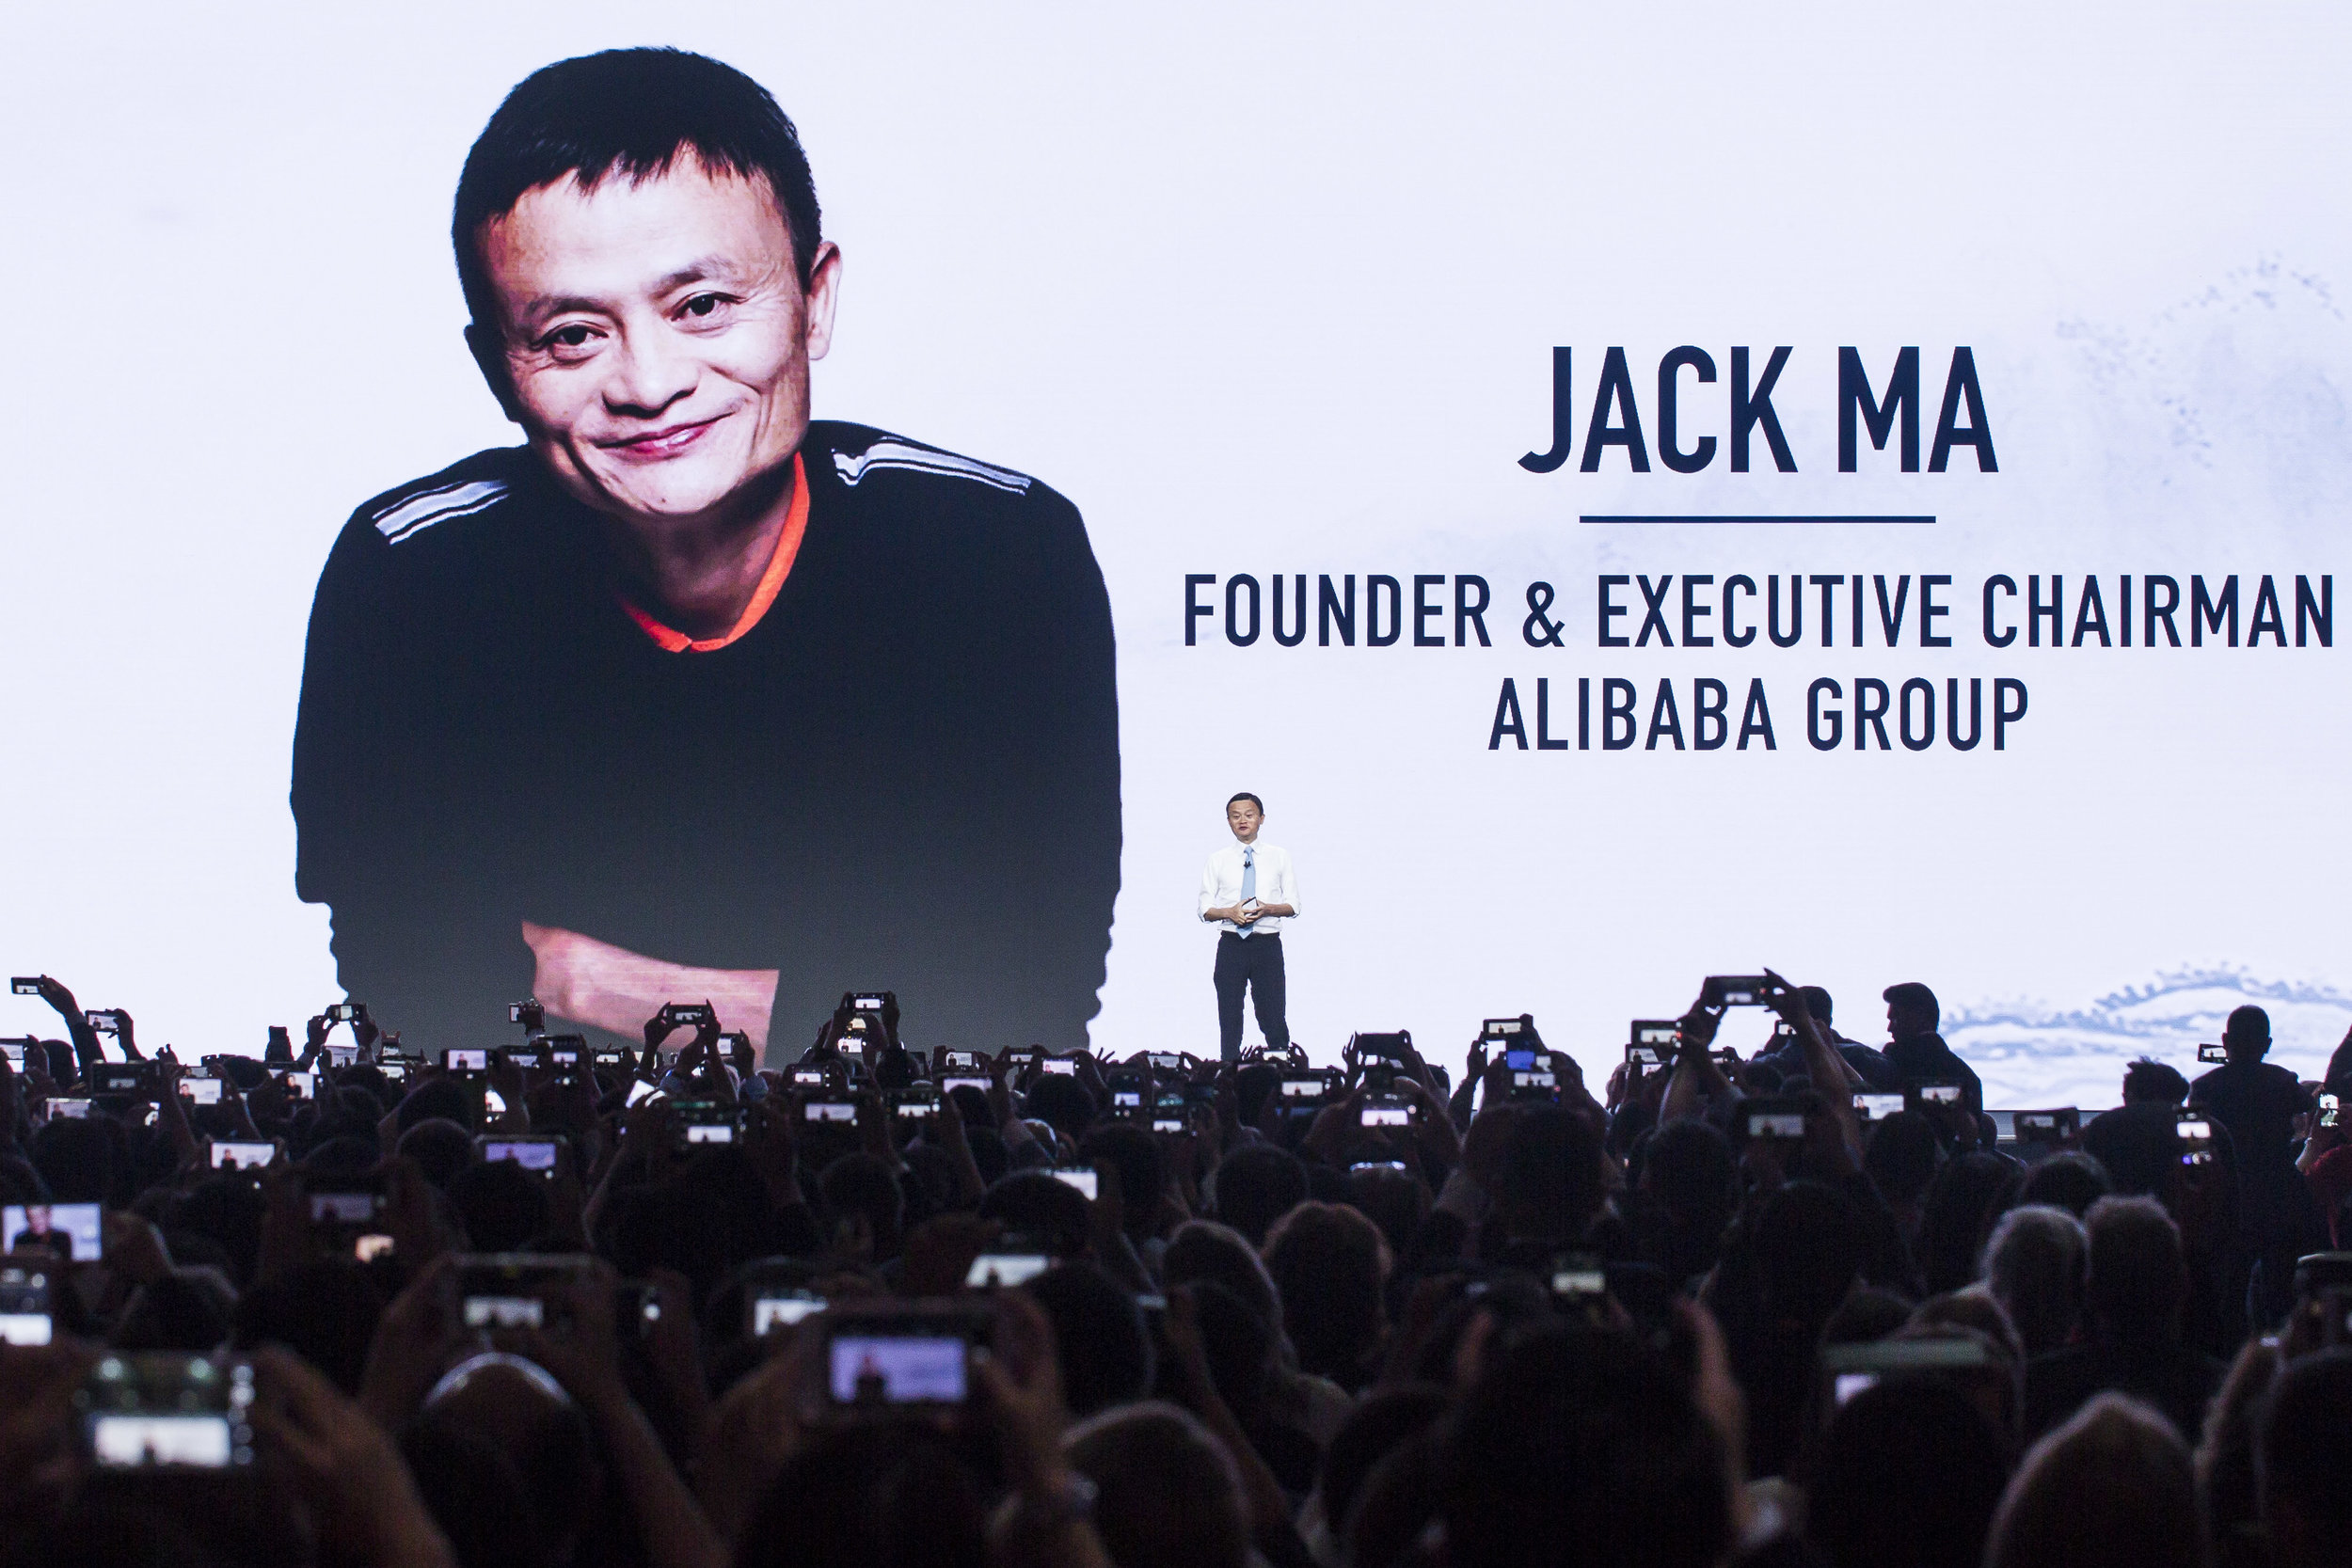 Jack Ma speaks at the Alibaba Gateway '17 conference in Toronto, Canada on September 25, 2017 (Photo by Ben Hider)